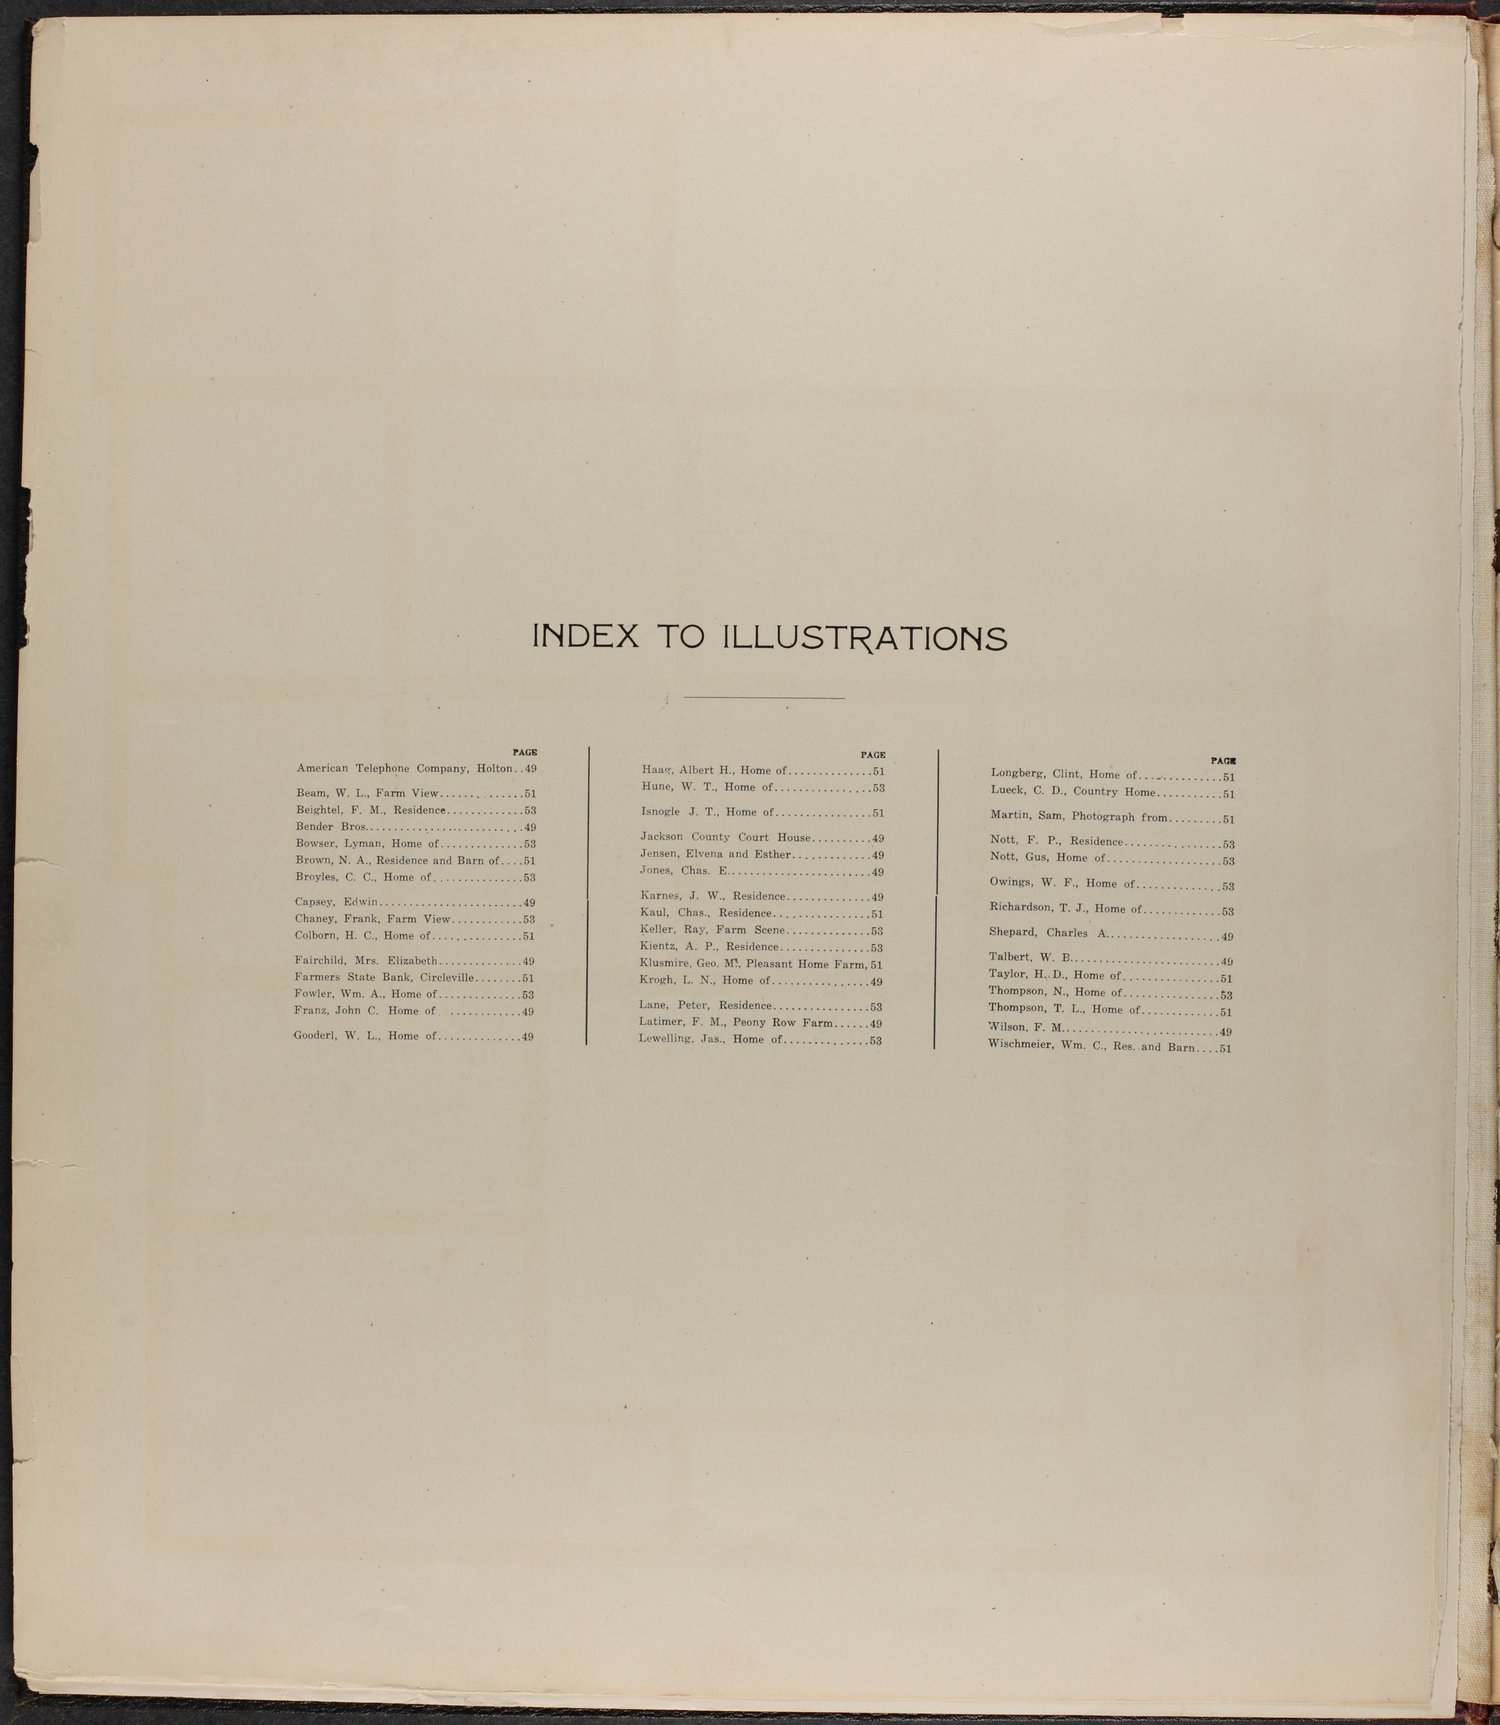 Standard atlas of Jackson County, Kansas - Index to Illustrations